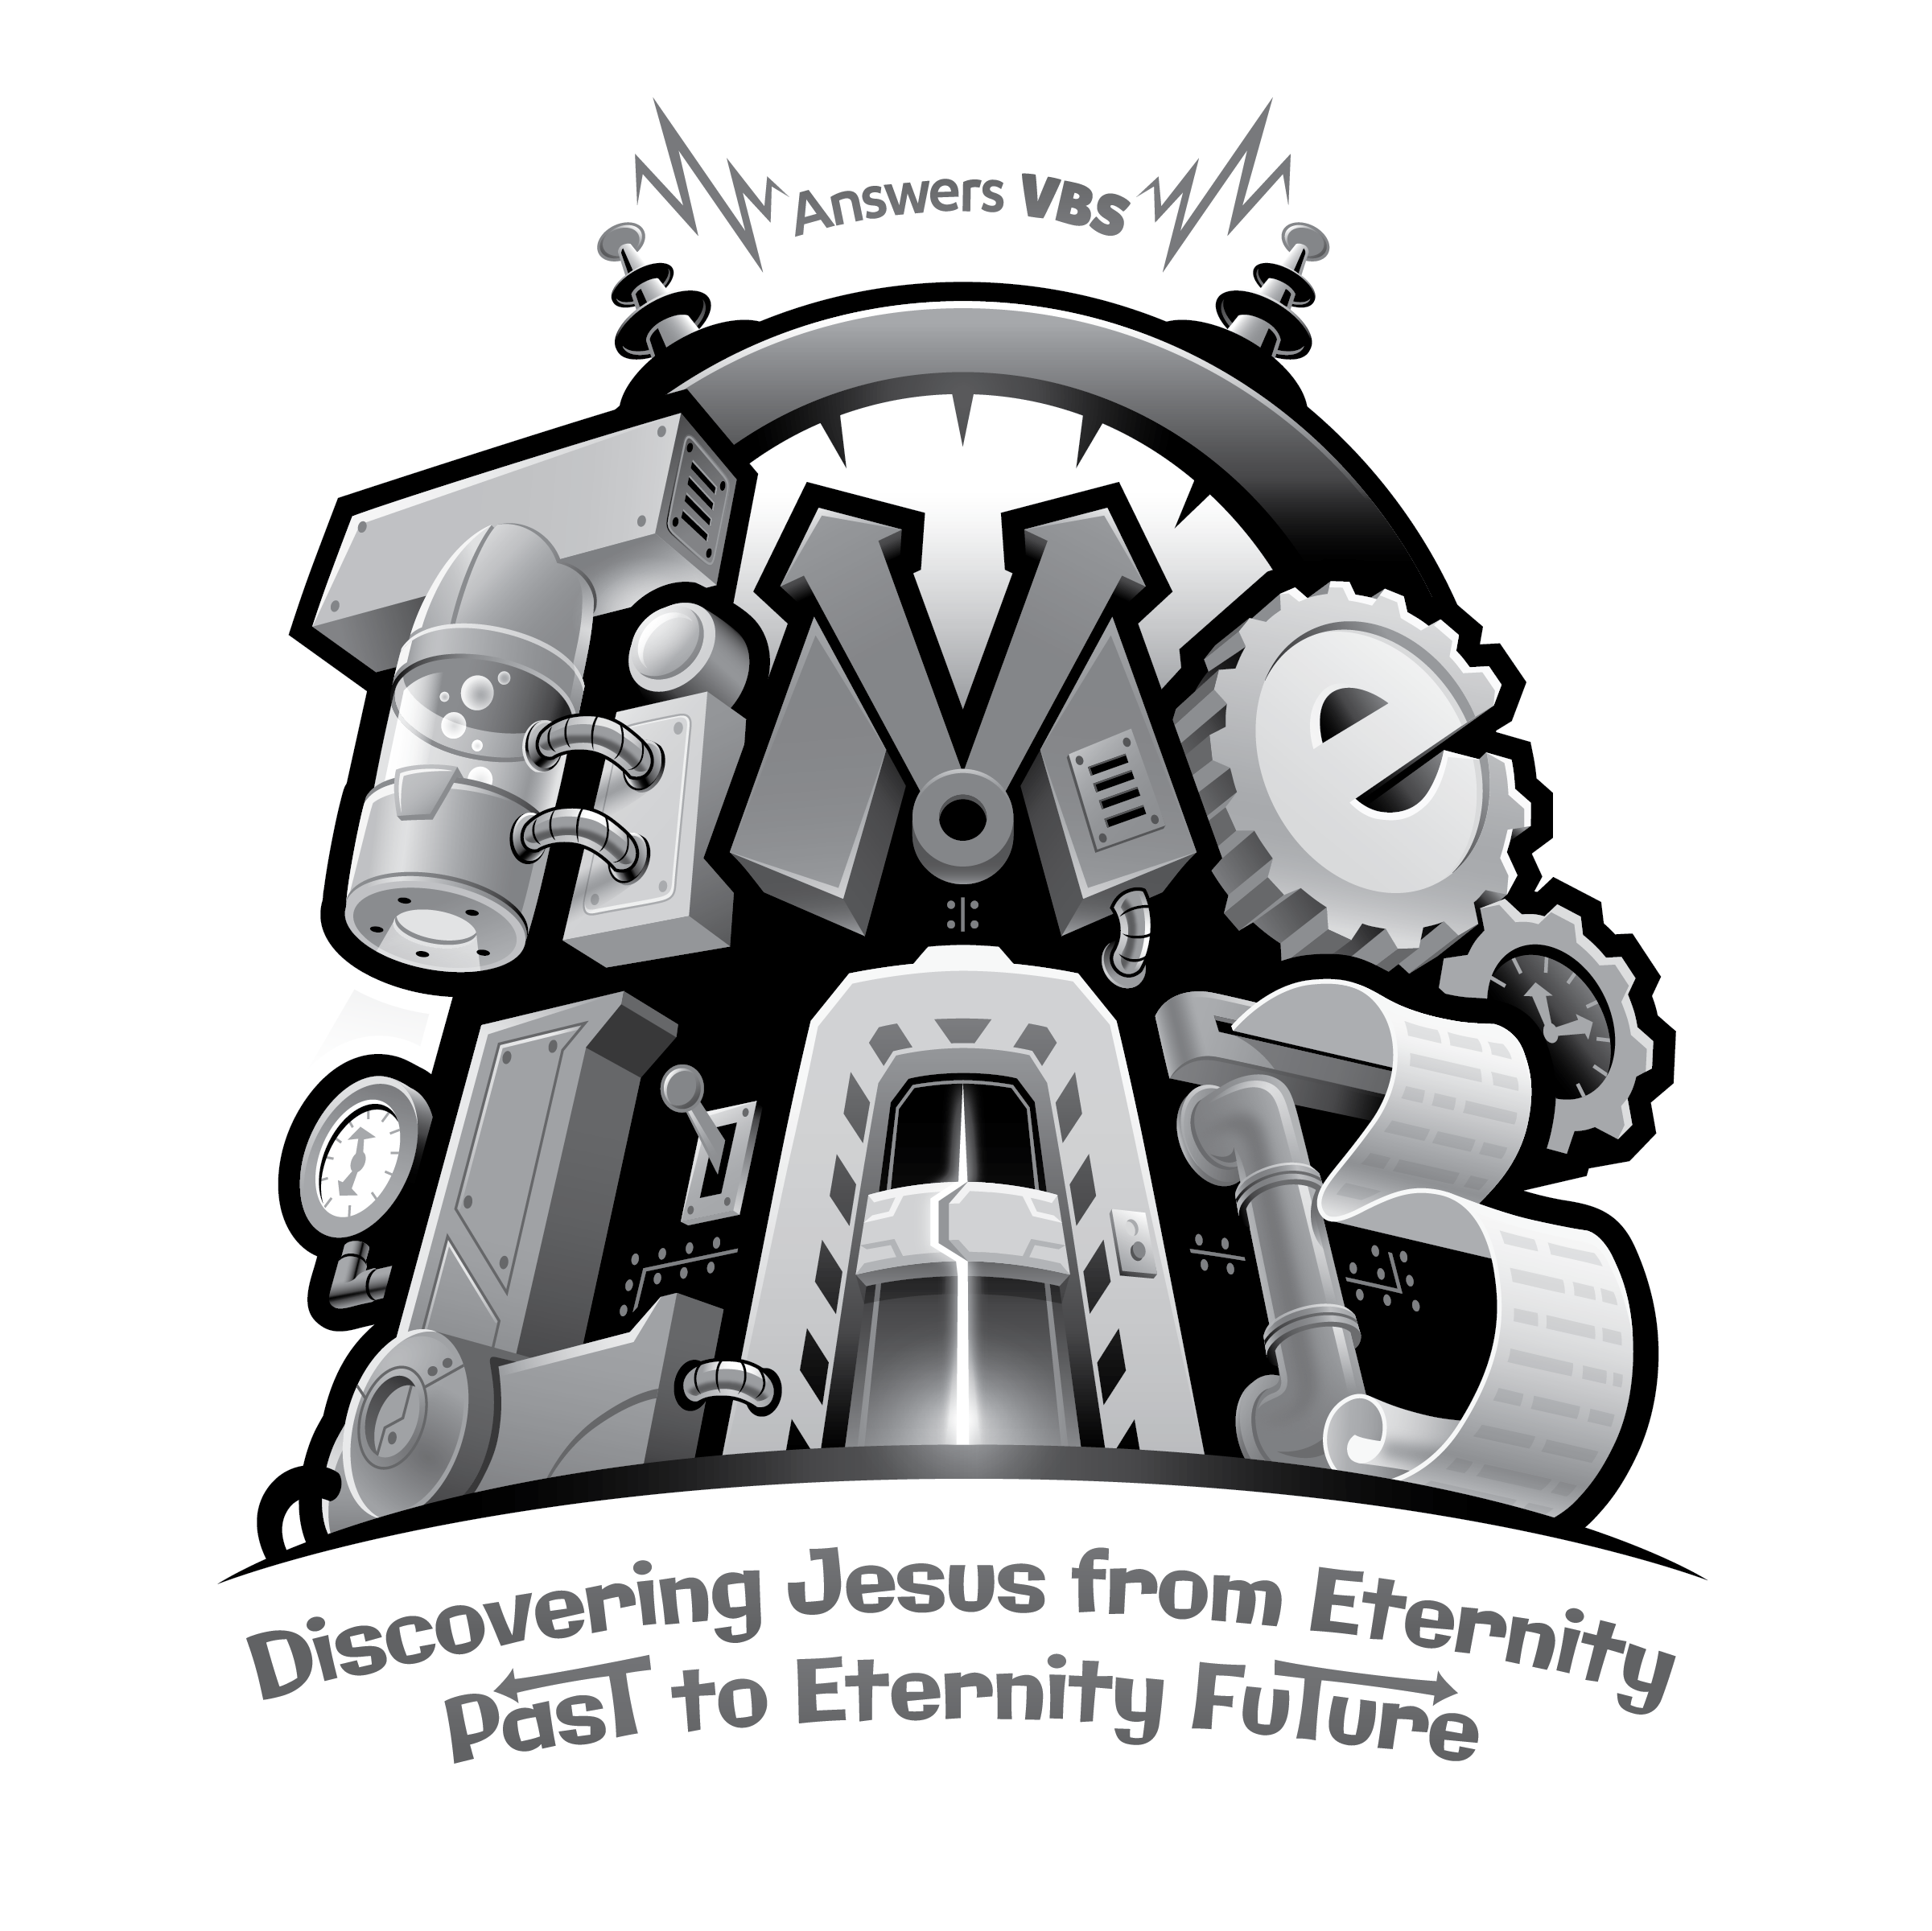 Walk to school clipart black and white image library library VBS > VBS 2018 Themes > Time Lab VBS 2018 > Time Lab Free Resources image library library